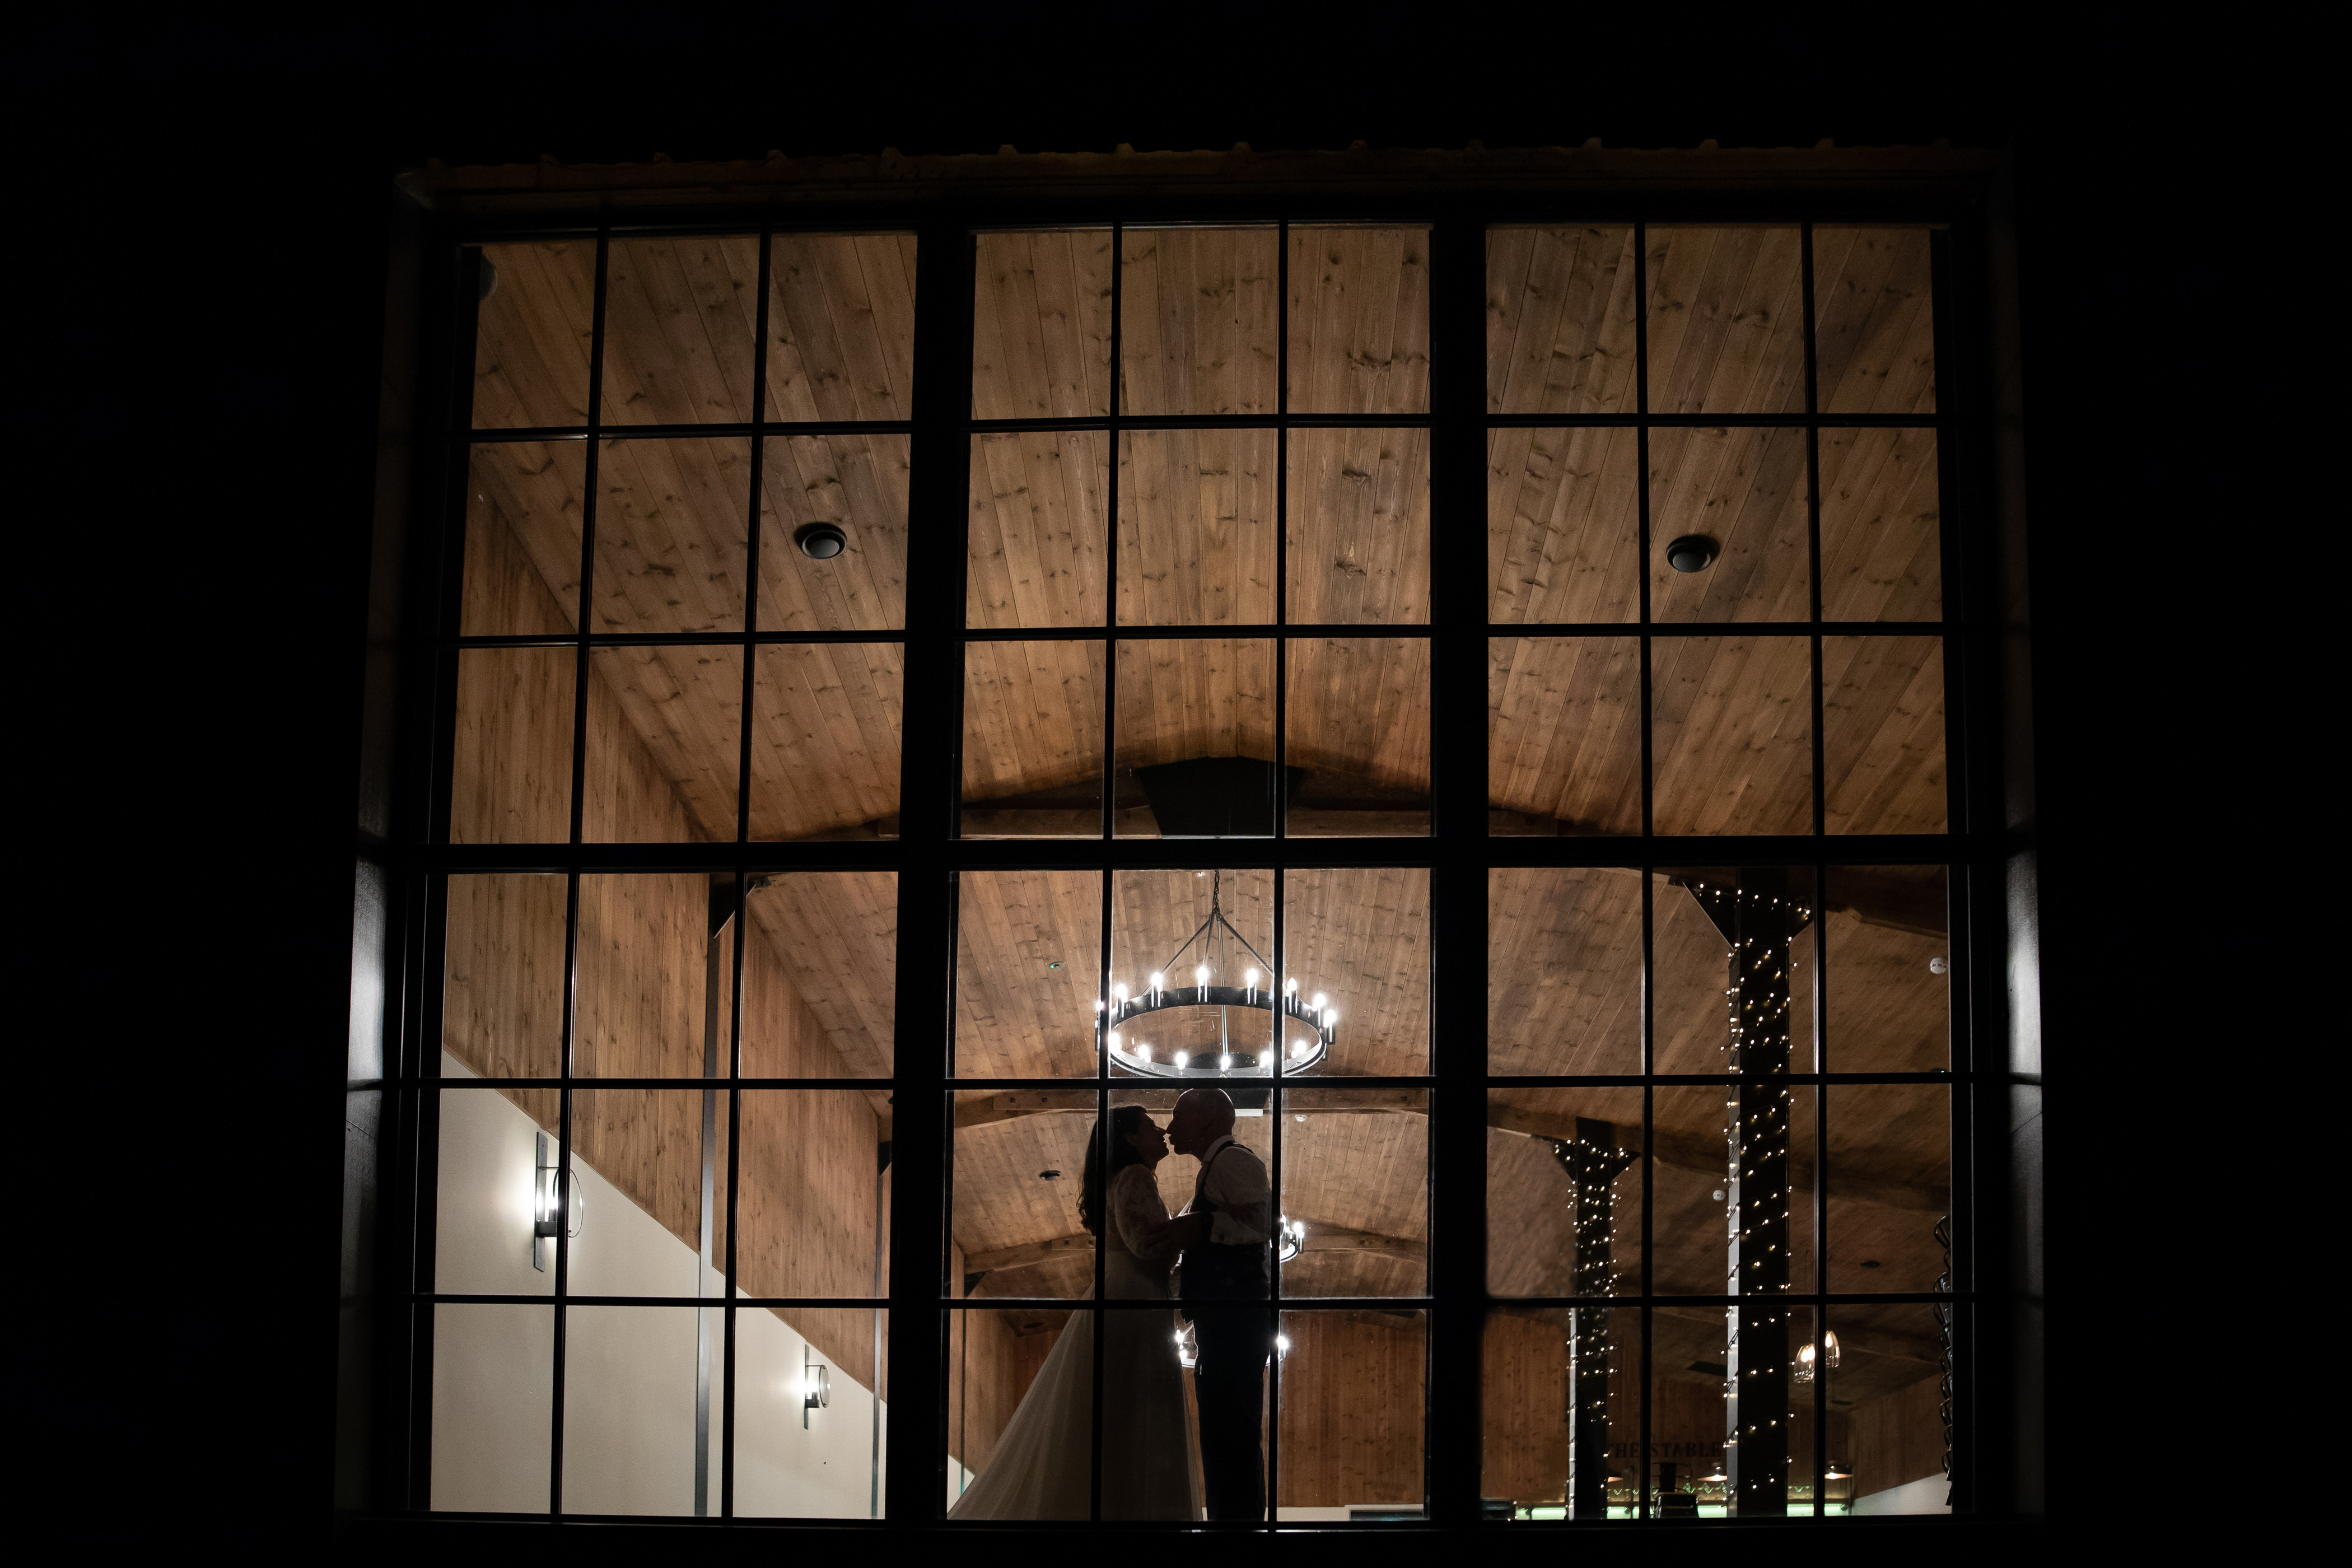 Bride and Groom sihouetted by lights in The Stable barn large window.